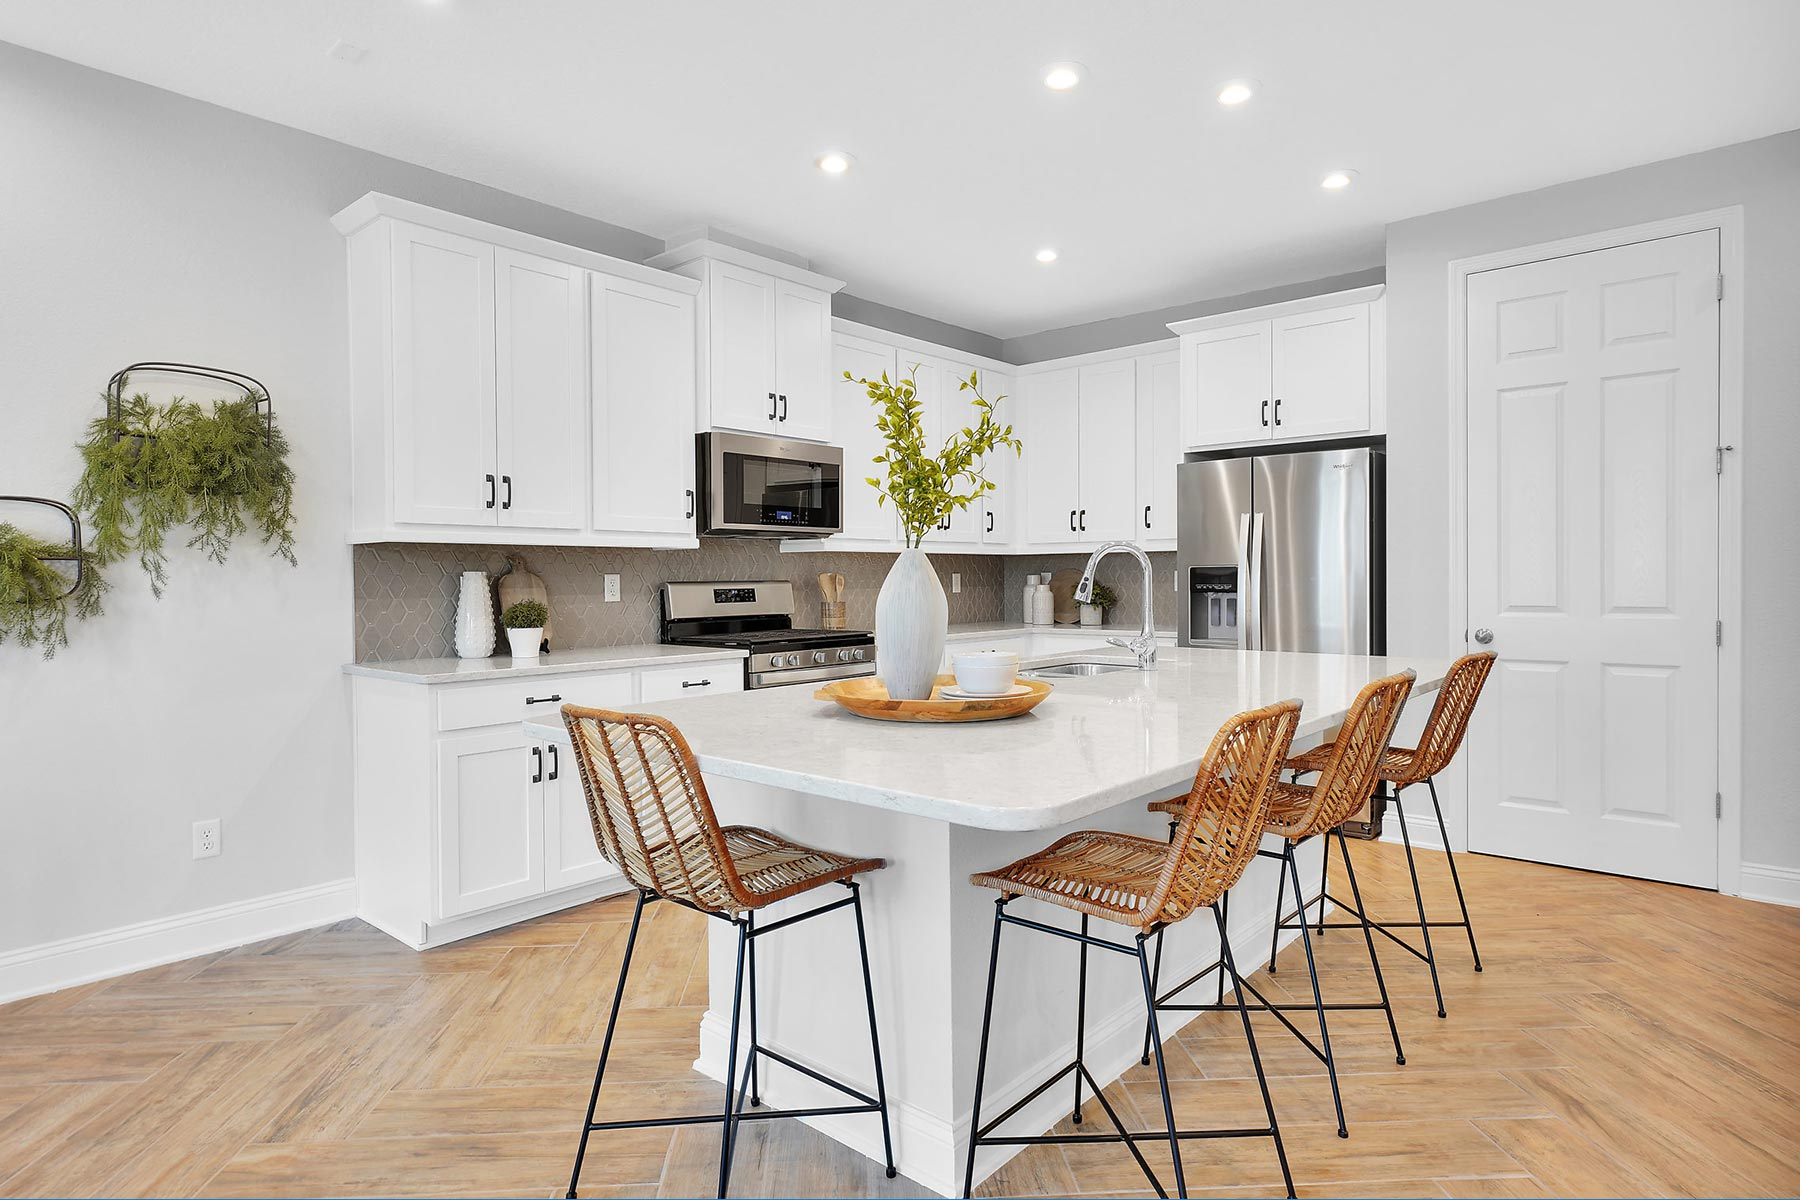 Rialta Plan Kitchen at Pablo Cove in Jacksonville Florida by Mattamy Homes